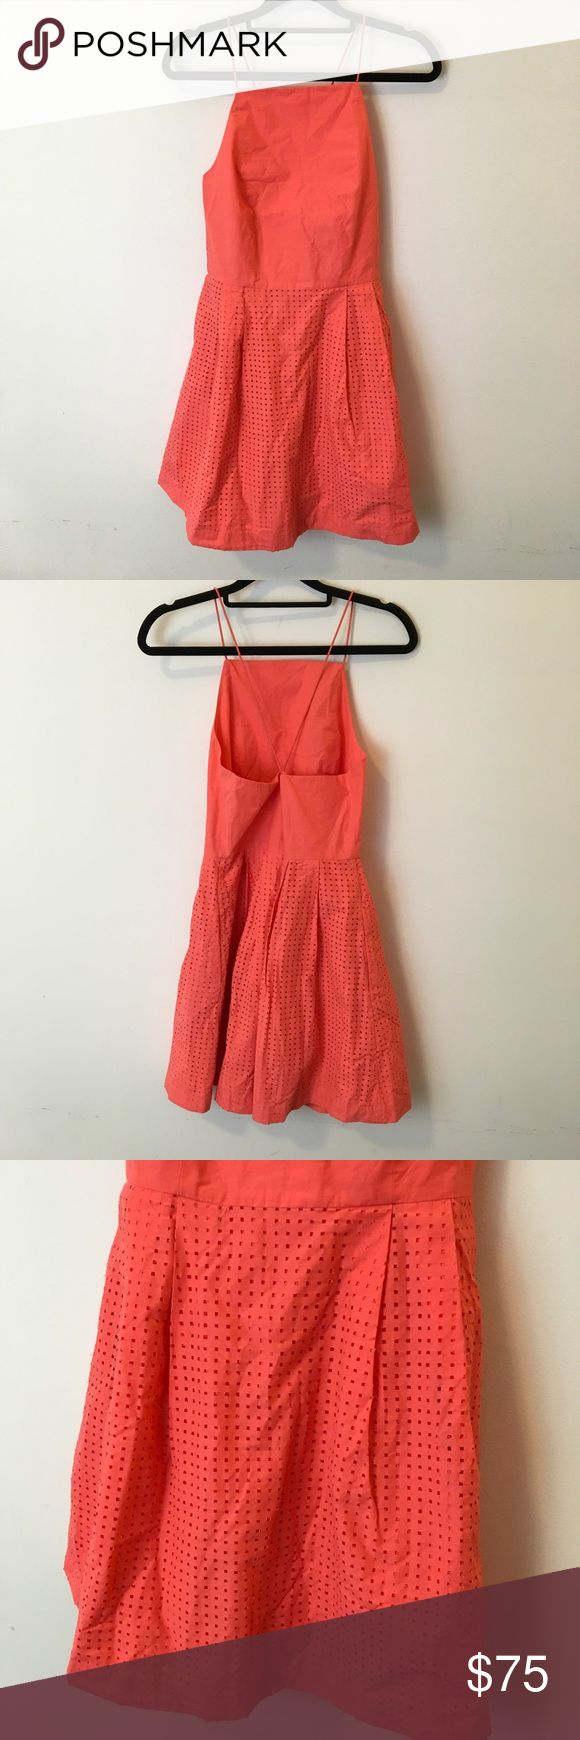 Saturday By Kate Spade Orange Cut Out Skater Dress Saturday by Kate Spade dress skater style and is lined. Pockets and is a size 8. Sleeveless and is in great condition worn once. kate spade Dresses